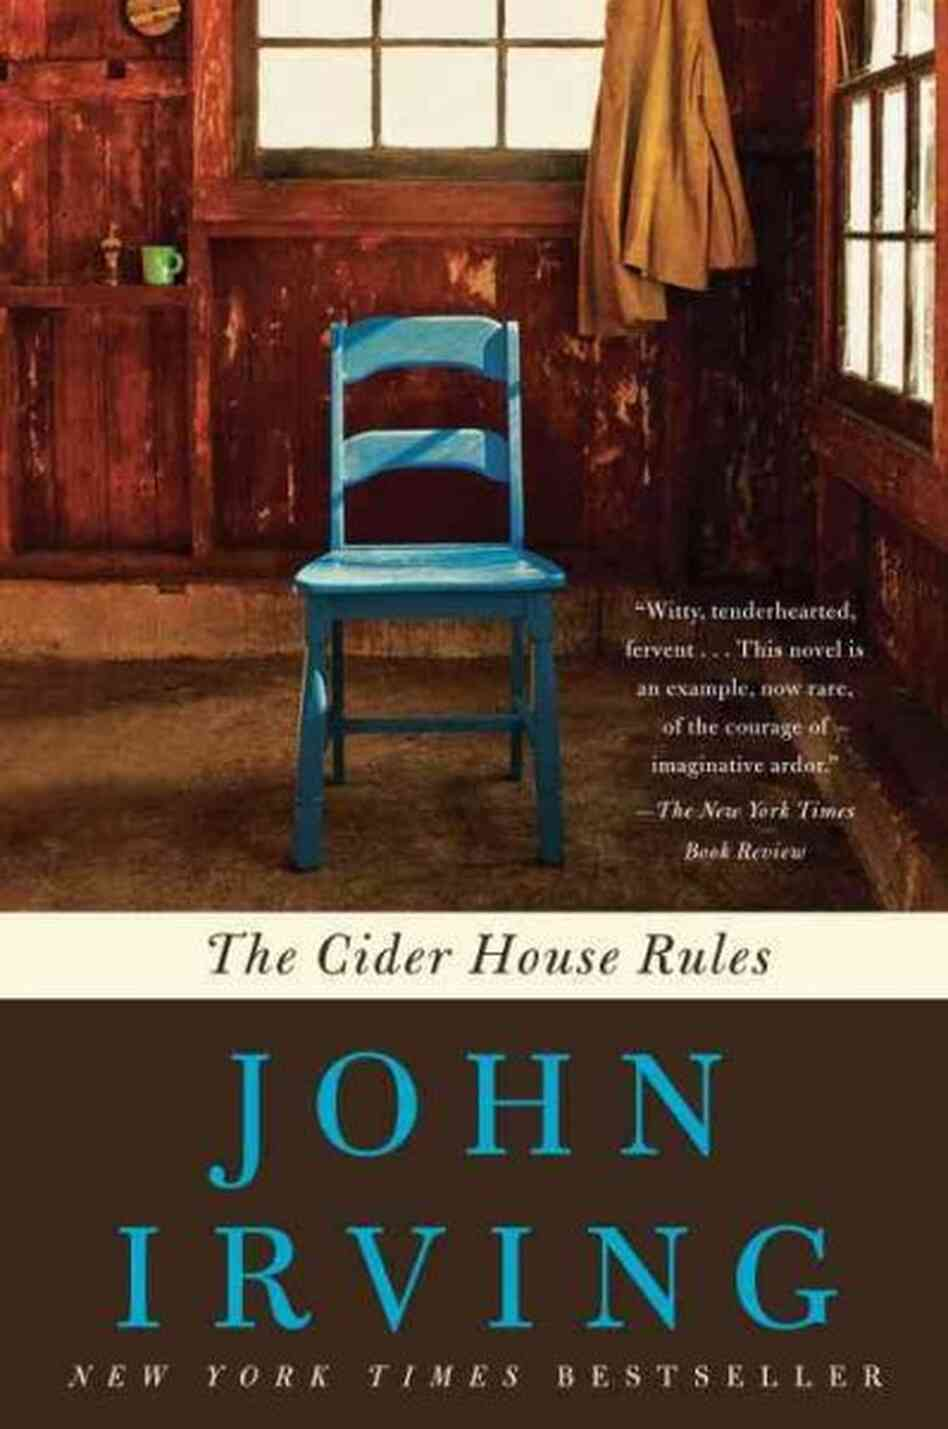 book review of the cider house rules